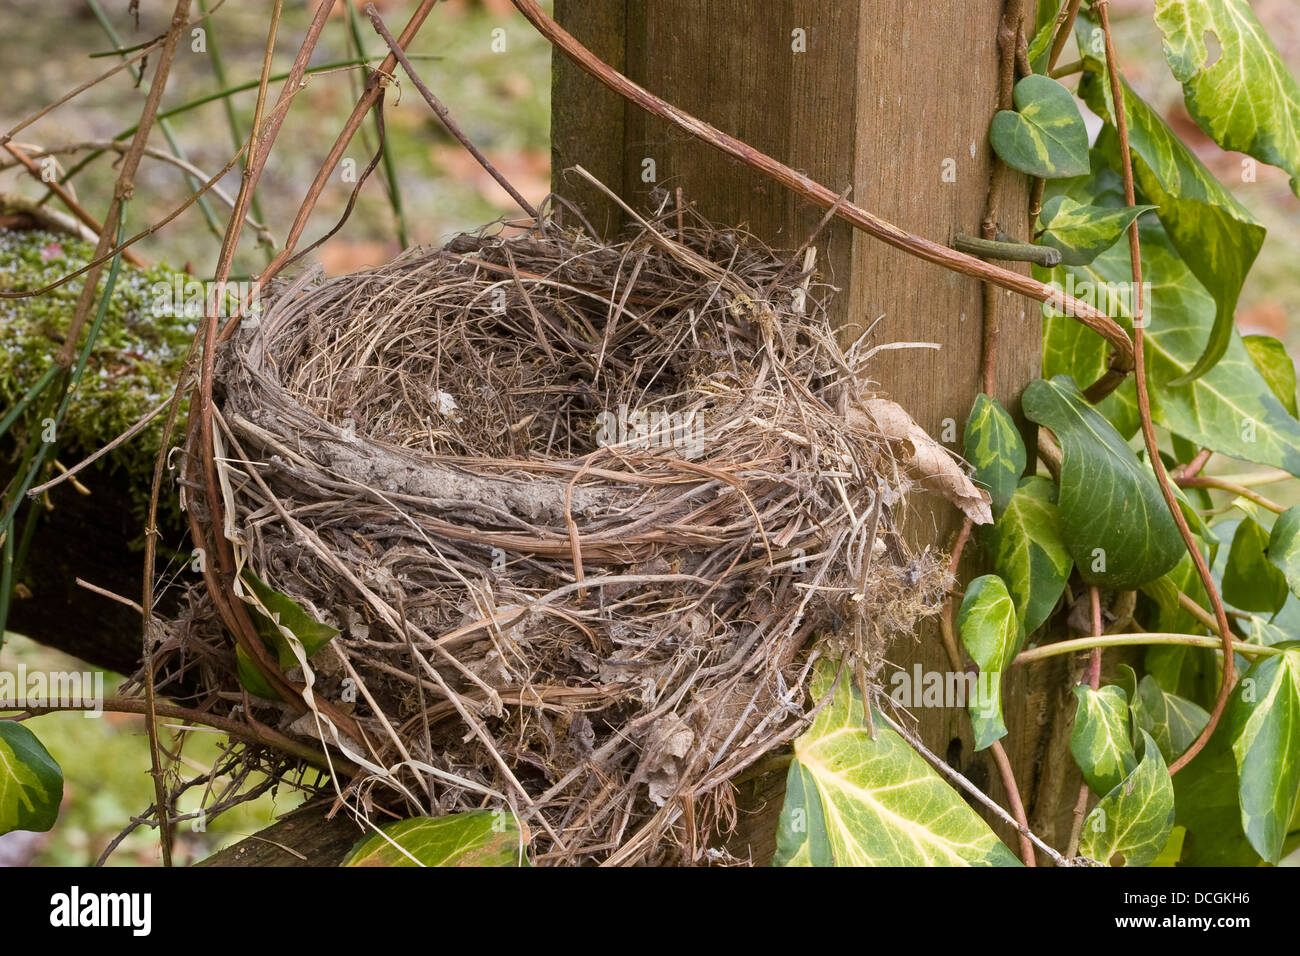 blackbird nest amsel gelege nest schwarzdrossel stock photo royalty free image 59373586. Black Bedroom Furniture Sets. Home Design Ideas